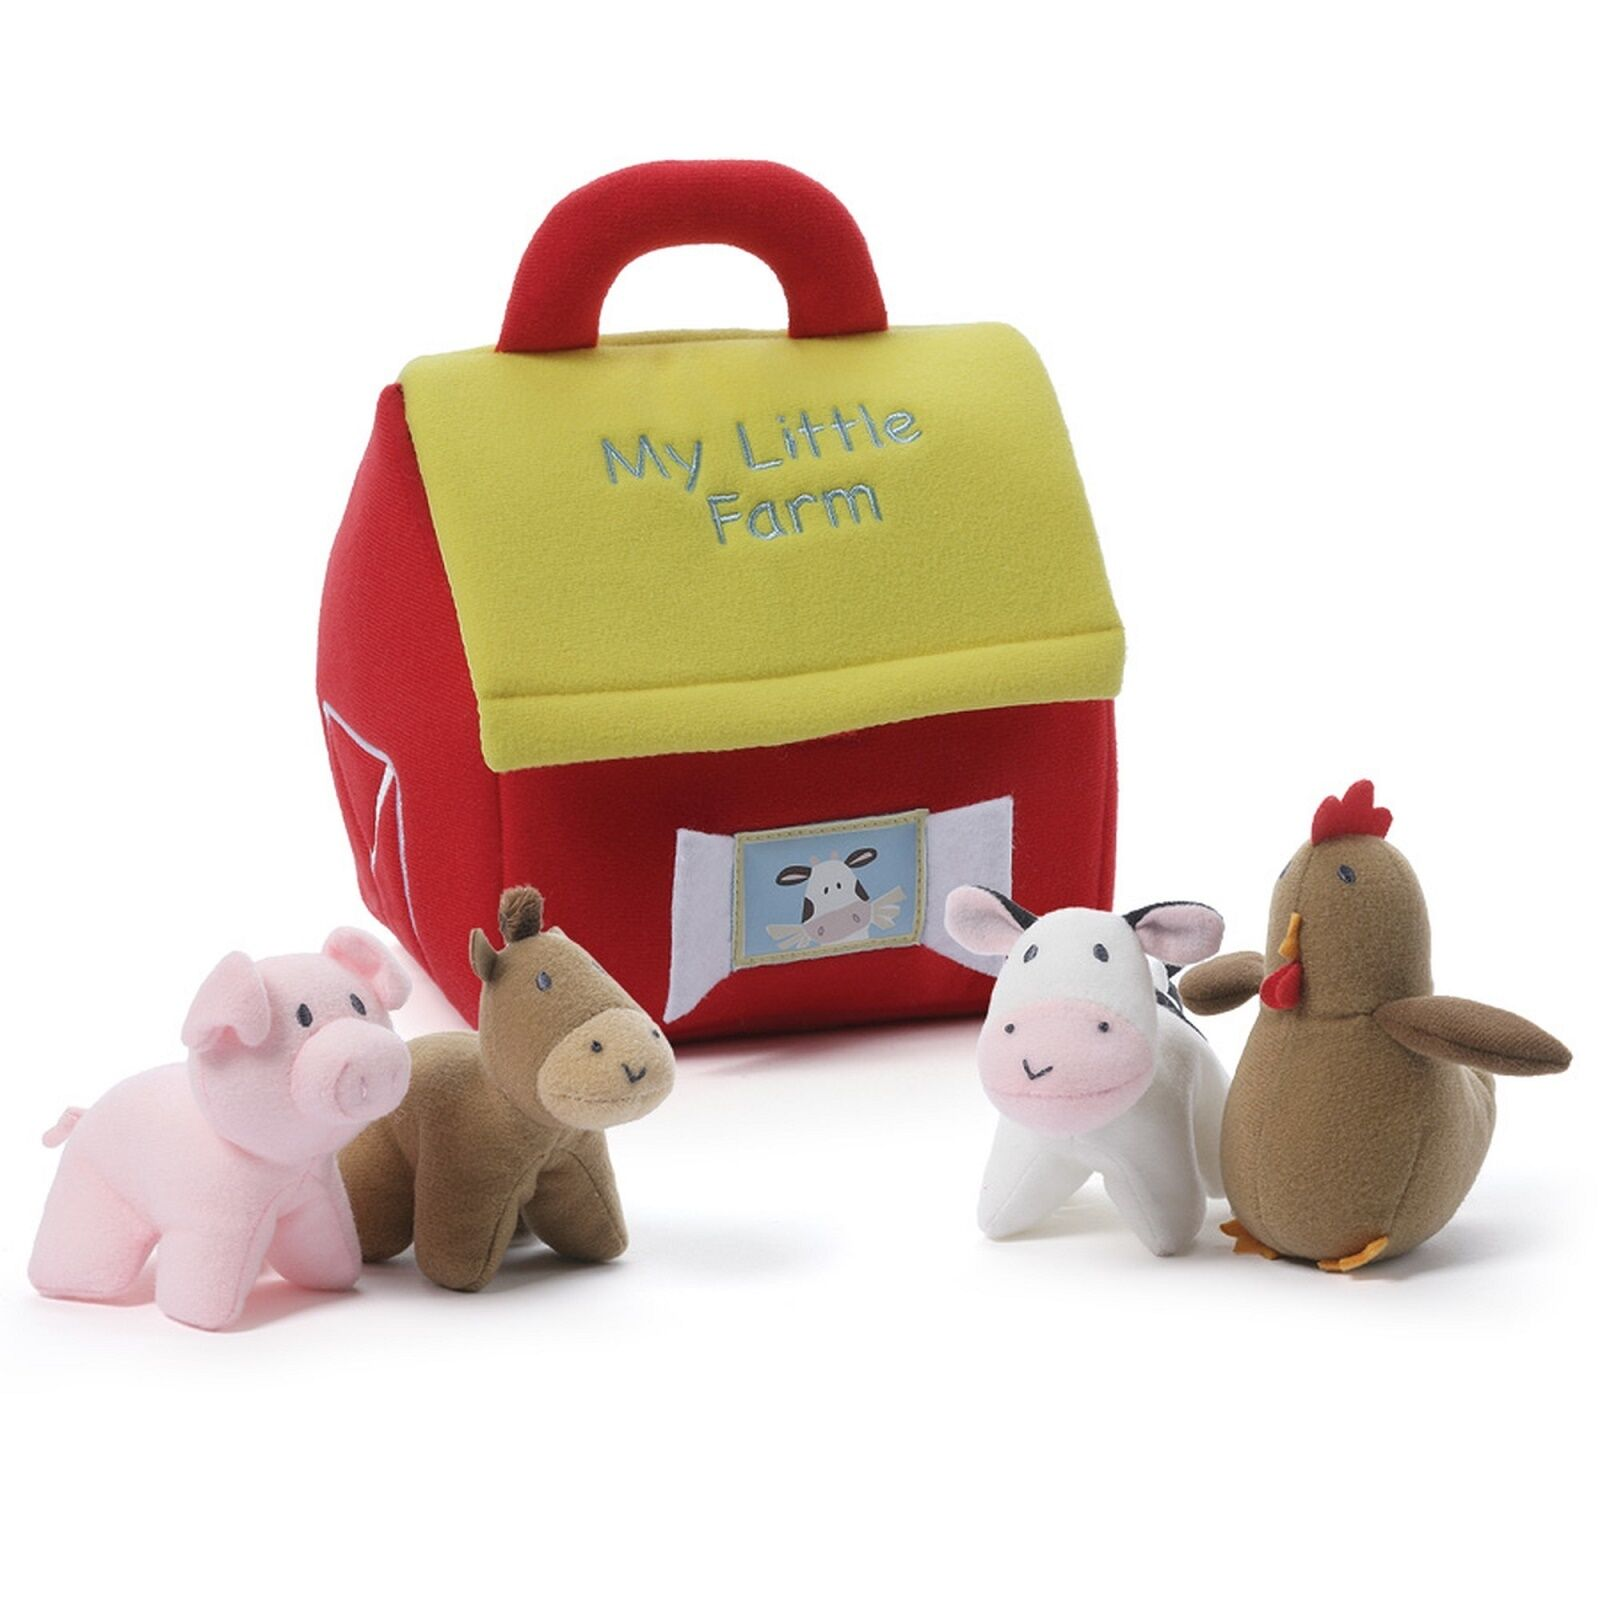 My Little Picnic Basket Playset CLOSE-OUT Baby Gund